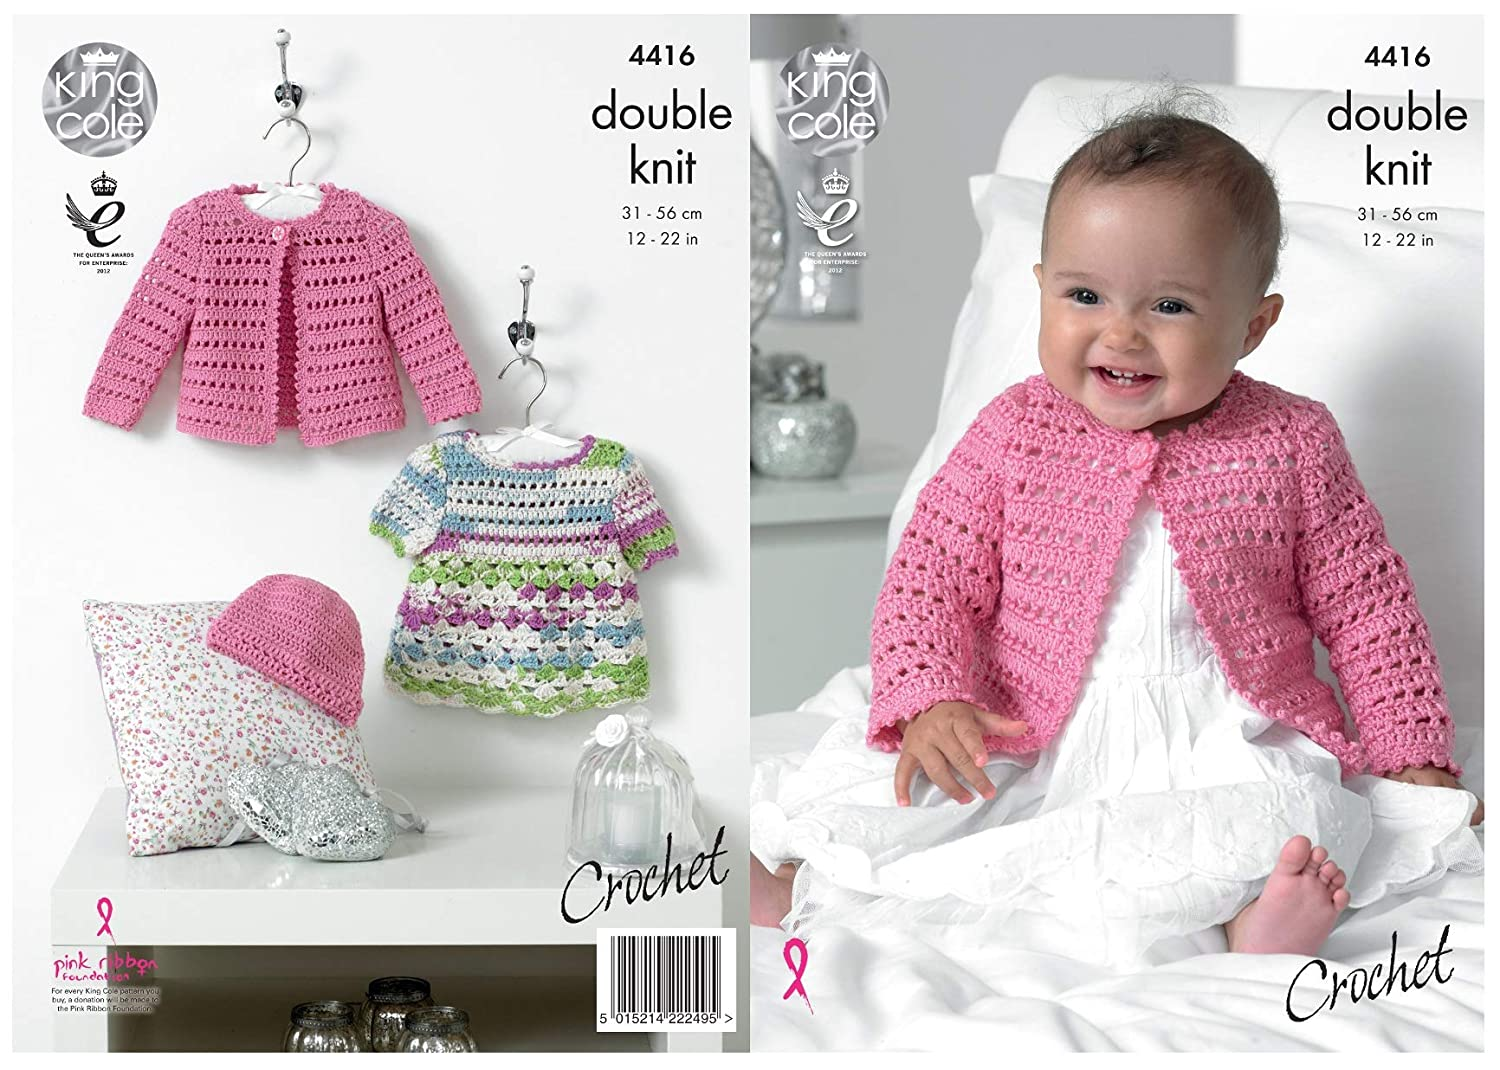 a78b6a1597b King Cole Baby Double Knit Crochet Pattern Lace Effect Dress Cardigan   Hat  Cherished DK (4416)  Amazon.co.uk  Kitchen   Home